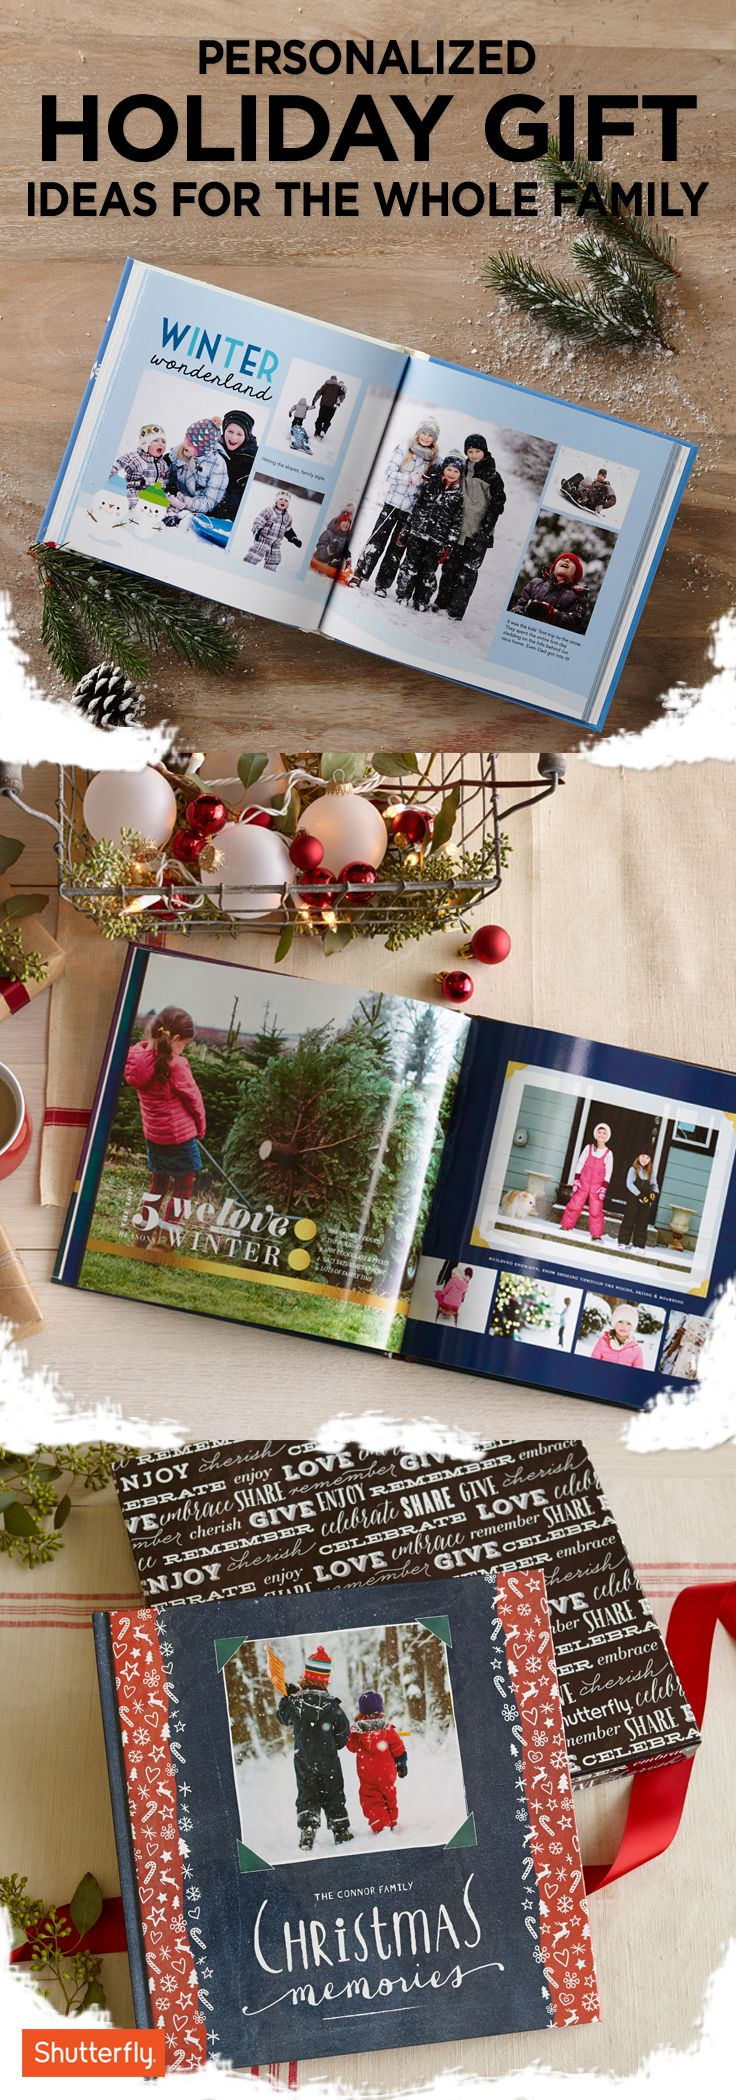 Still stumped on what to get the special person in your life? Discover Shutterfly's personalized photo books that everyone on your list will love receiving this holiday. Find everything you need (that your family will love!) at Shutterfly. Save Shutterfly items on Pinterest and snag 'em later!